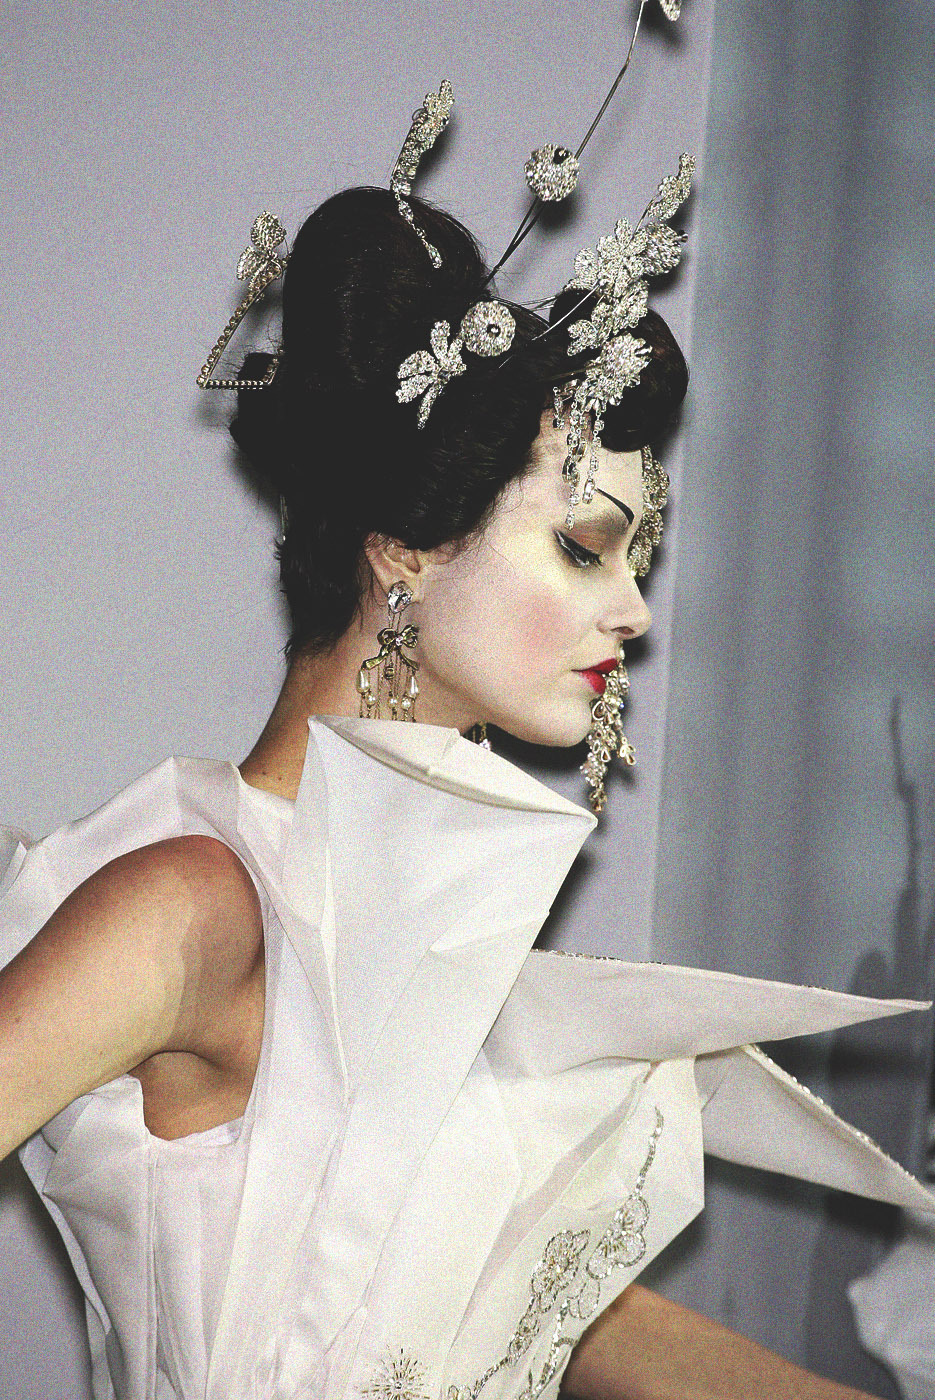 christian dior haute couture s/s 2007, shalom harlow on the finale at paris fashion week